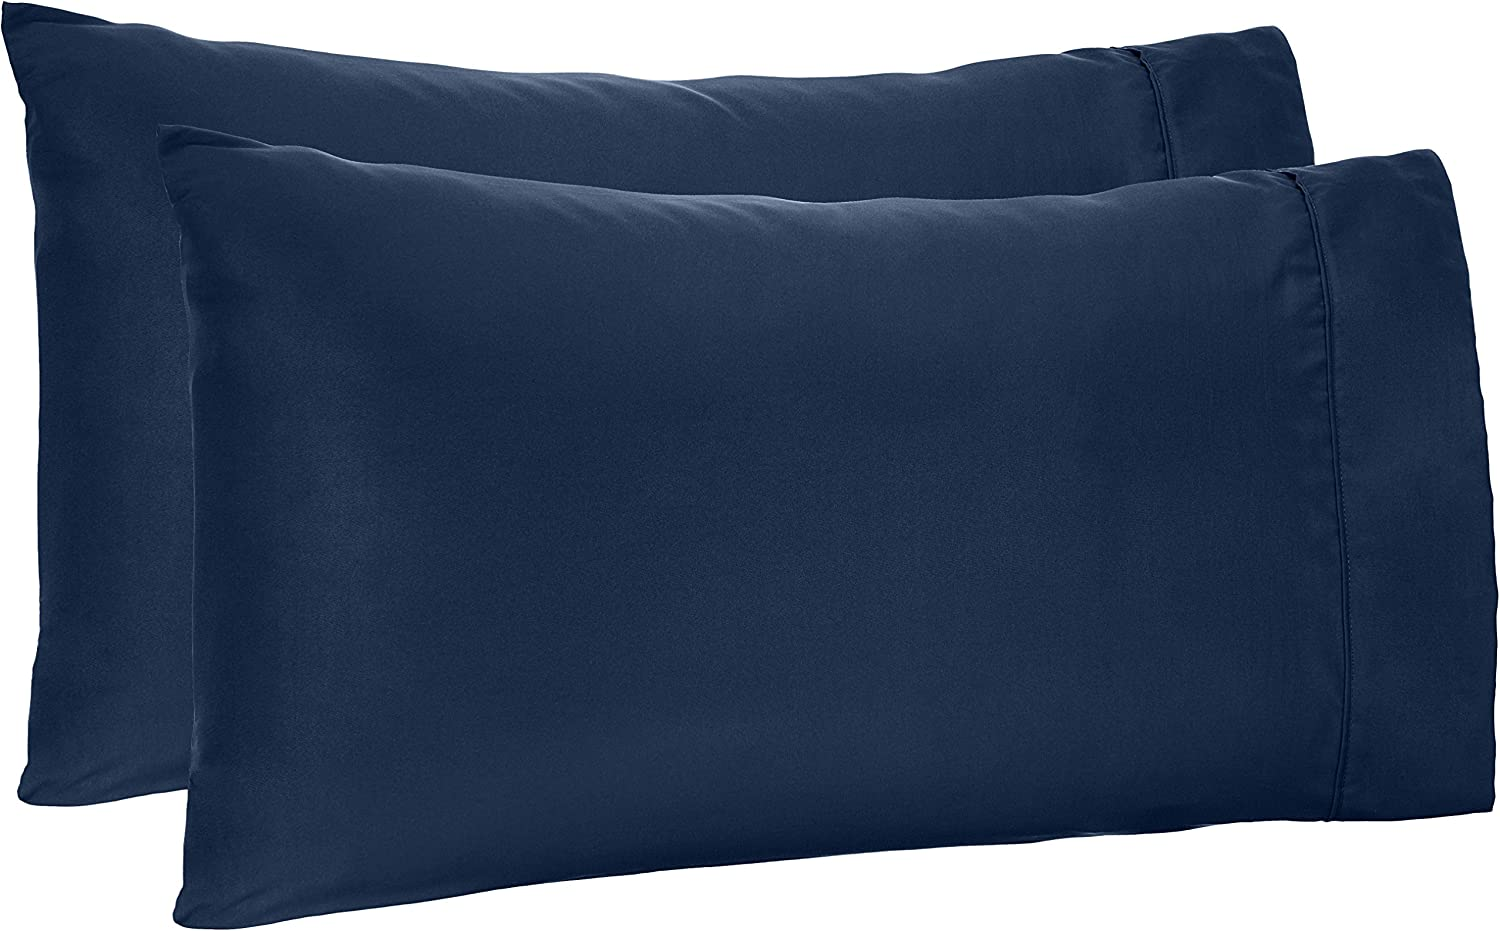 AmazonBasics Light-Weight Microfiber Pillowcases - 2-Pack, King, Navy Blue